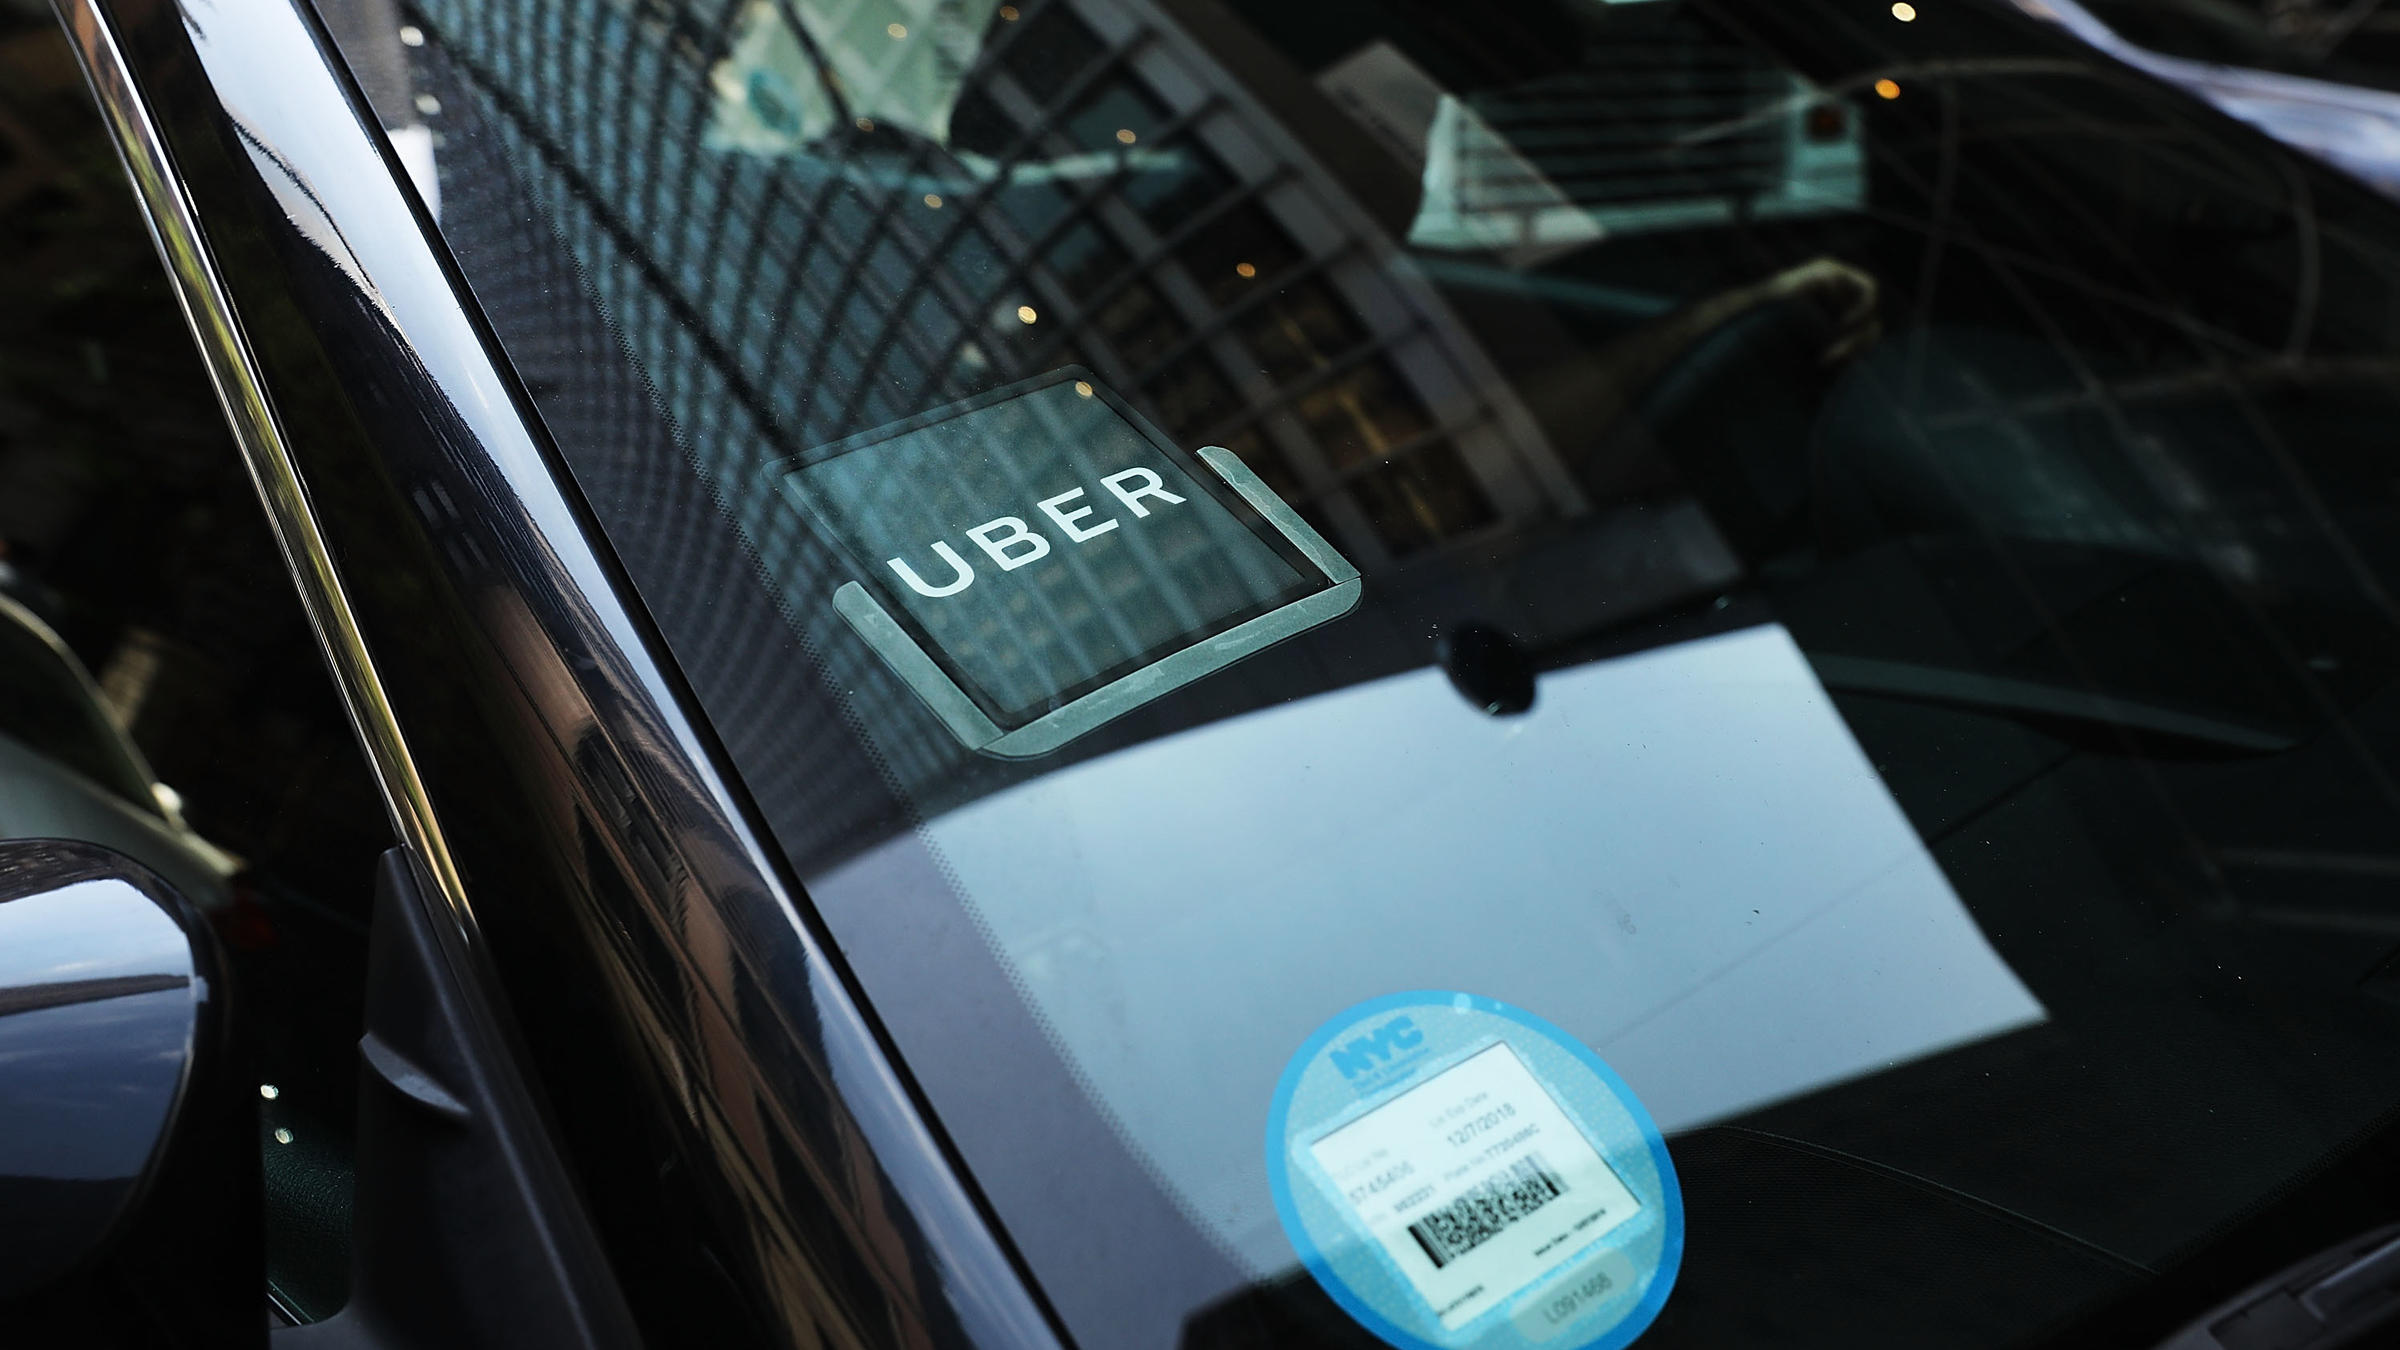 Study Finds Uber, Lyft Drivers Earn Median Income Of $3.37 Per Hour